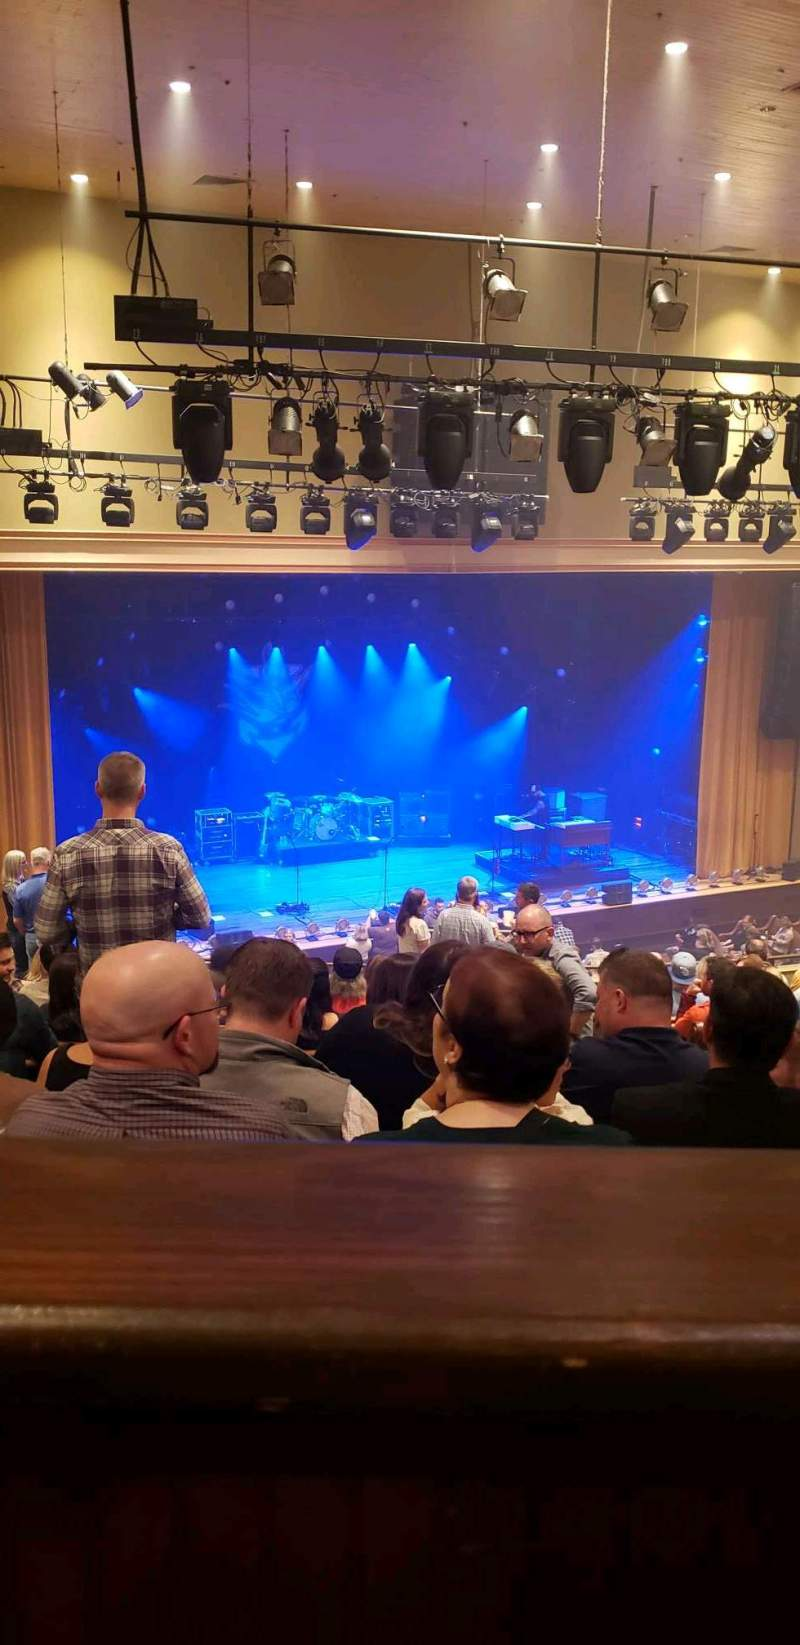 Seating view for Ryman Auditorium Section Bal-14 Row P Seat 2